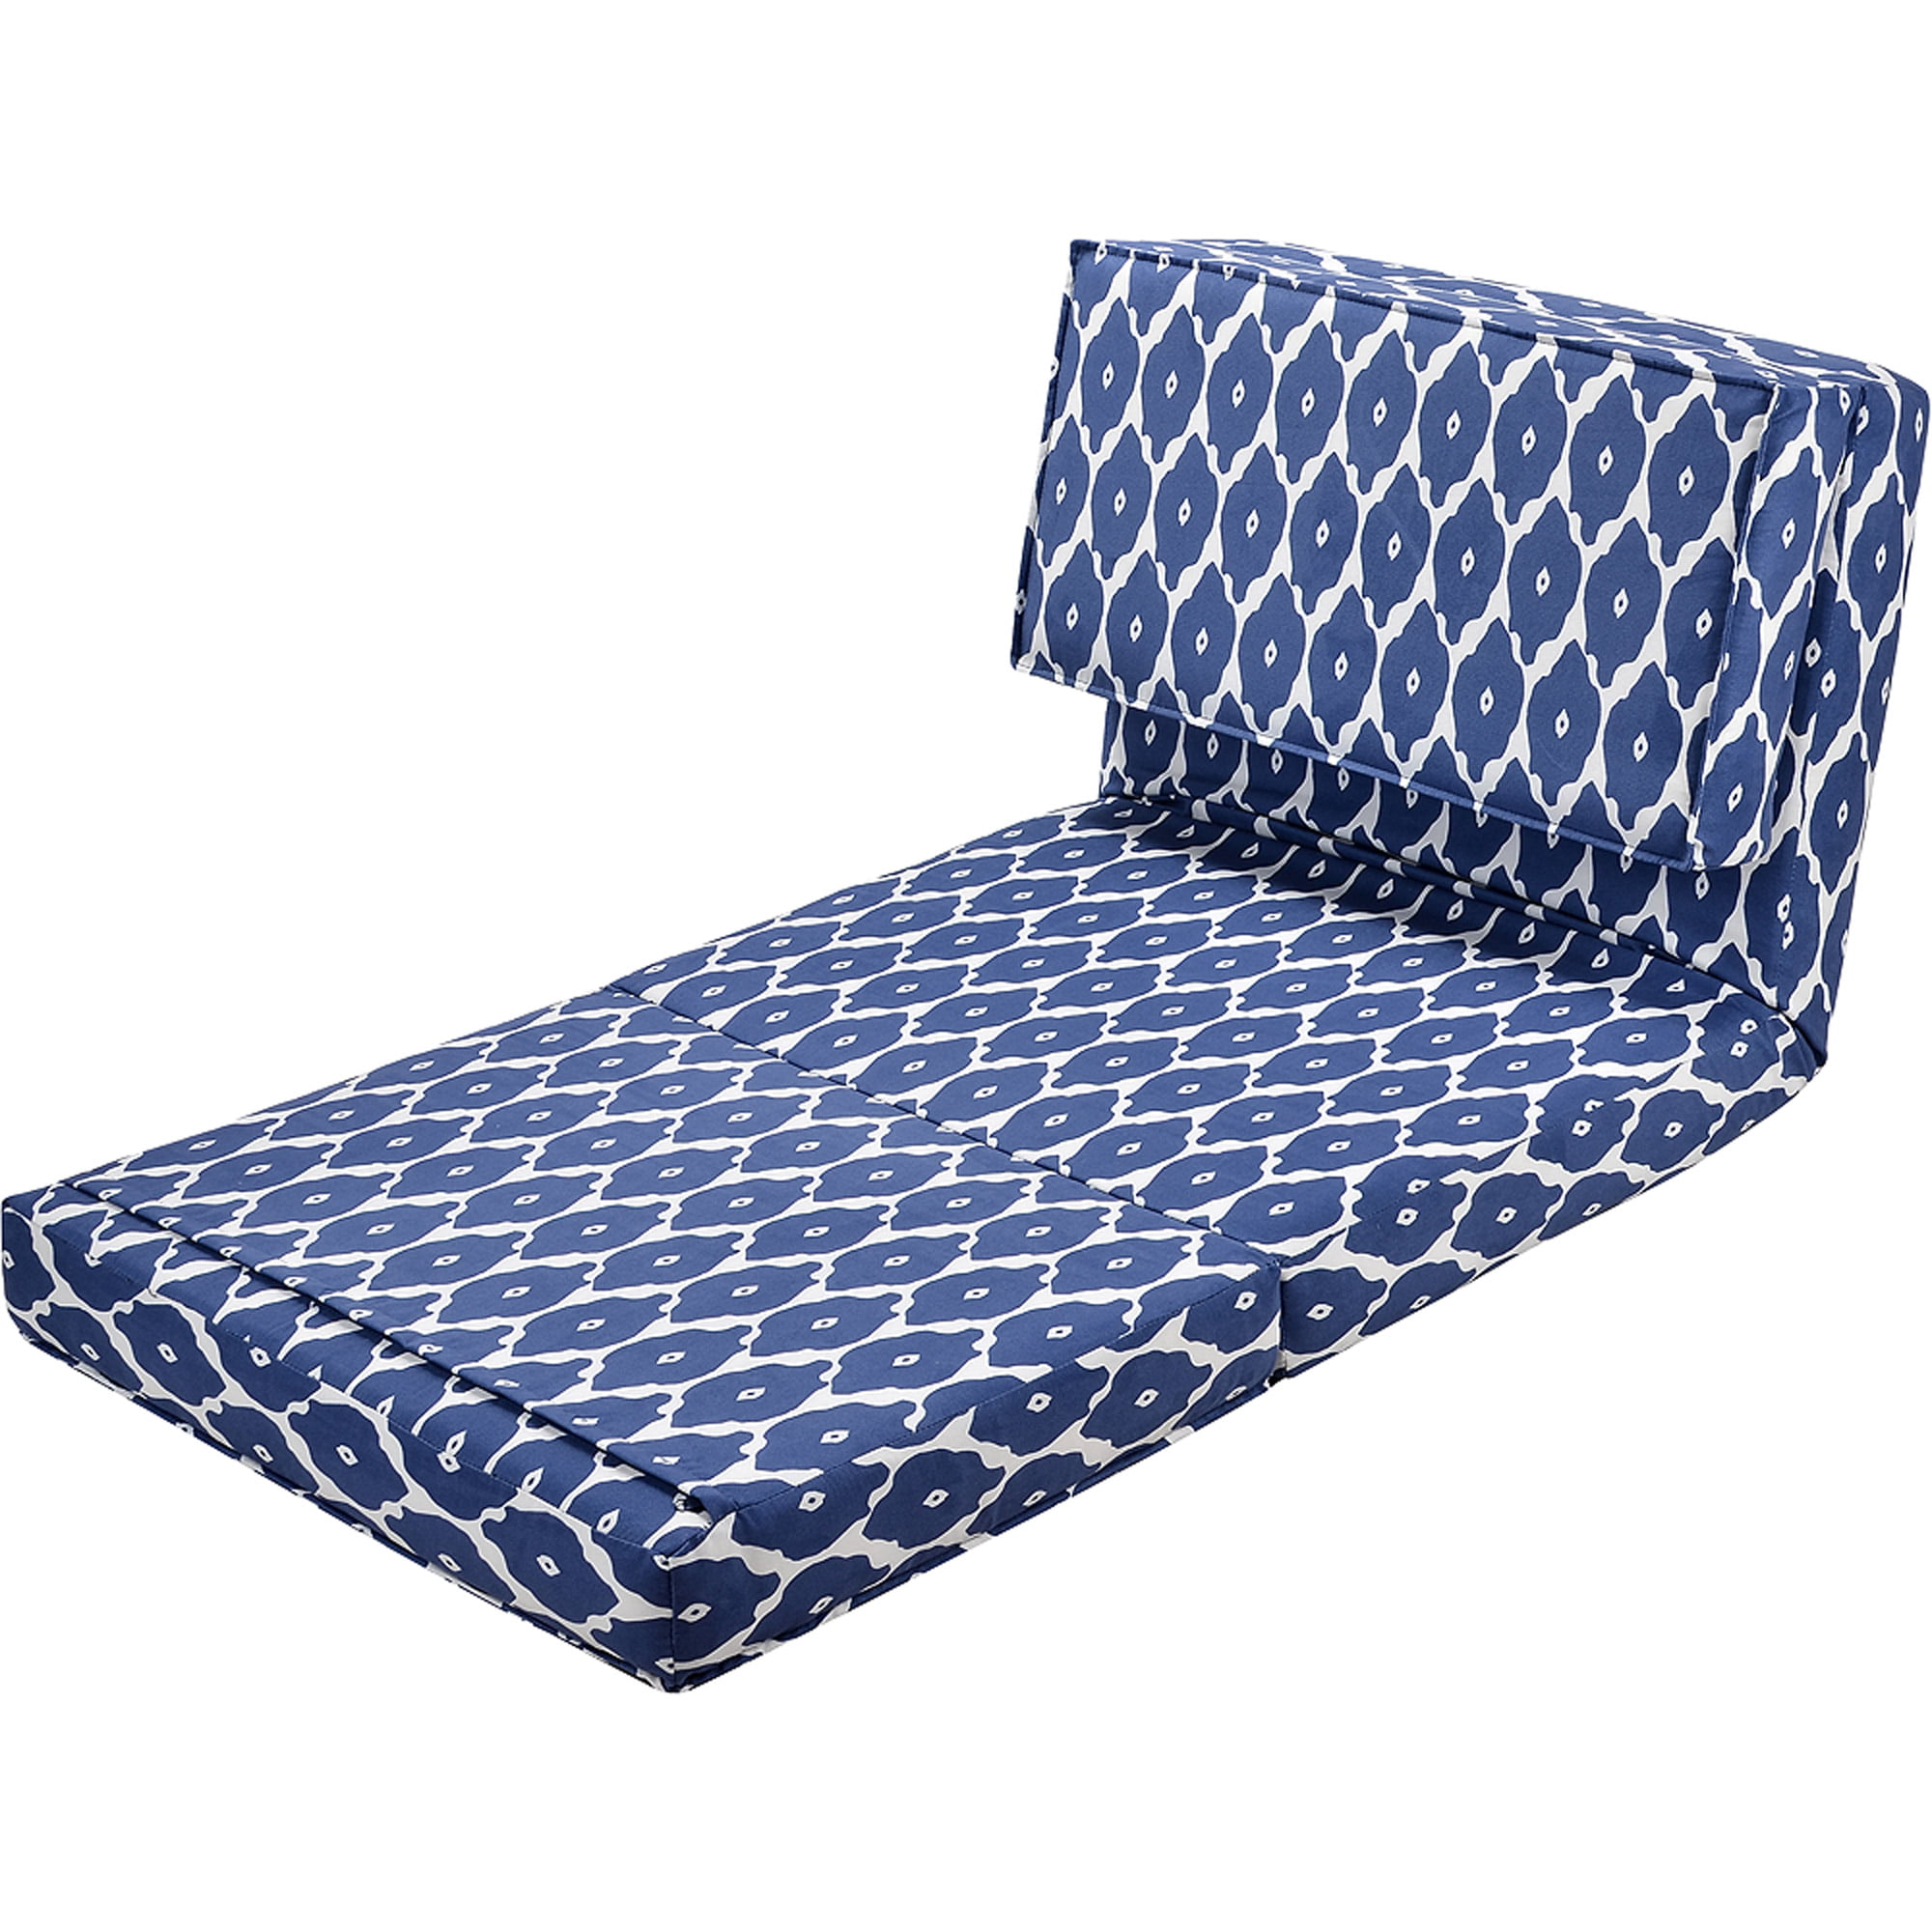 Folding bed chair - Folding Bed Chair 34